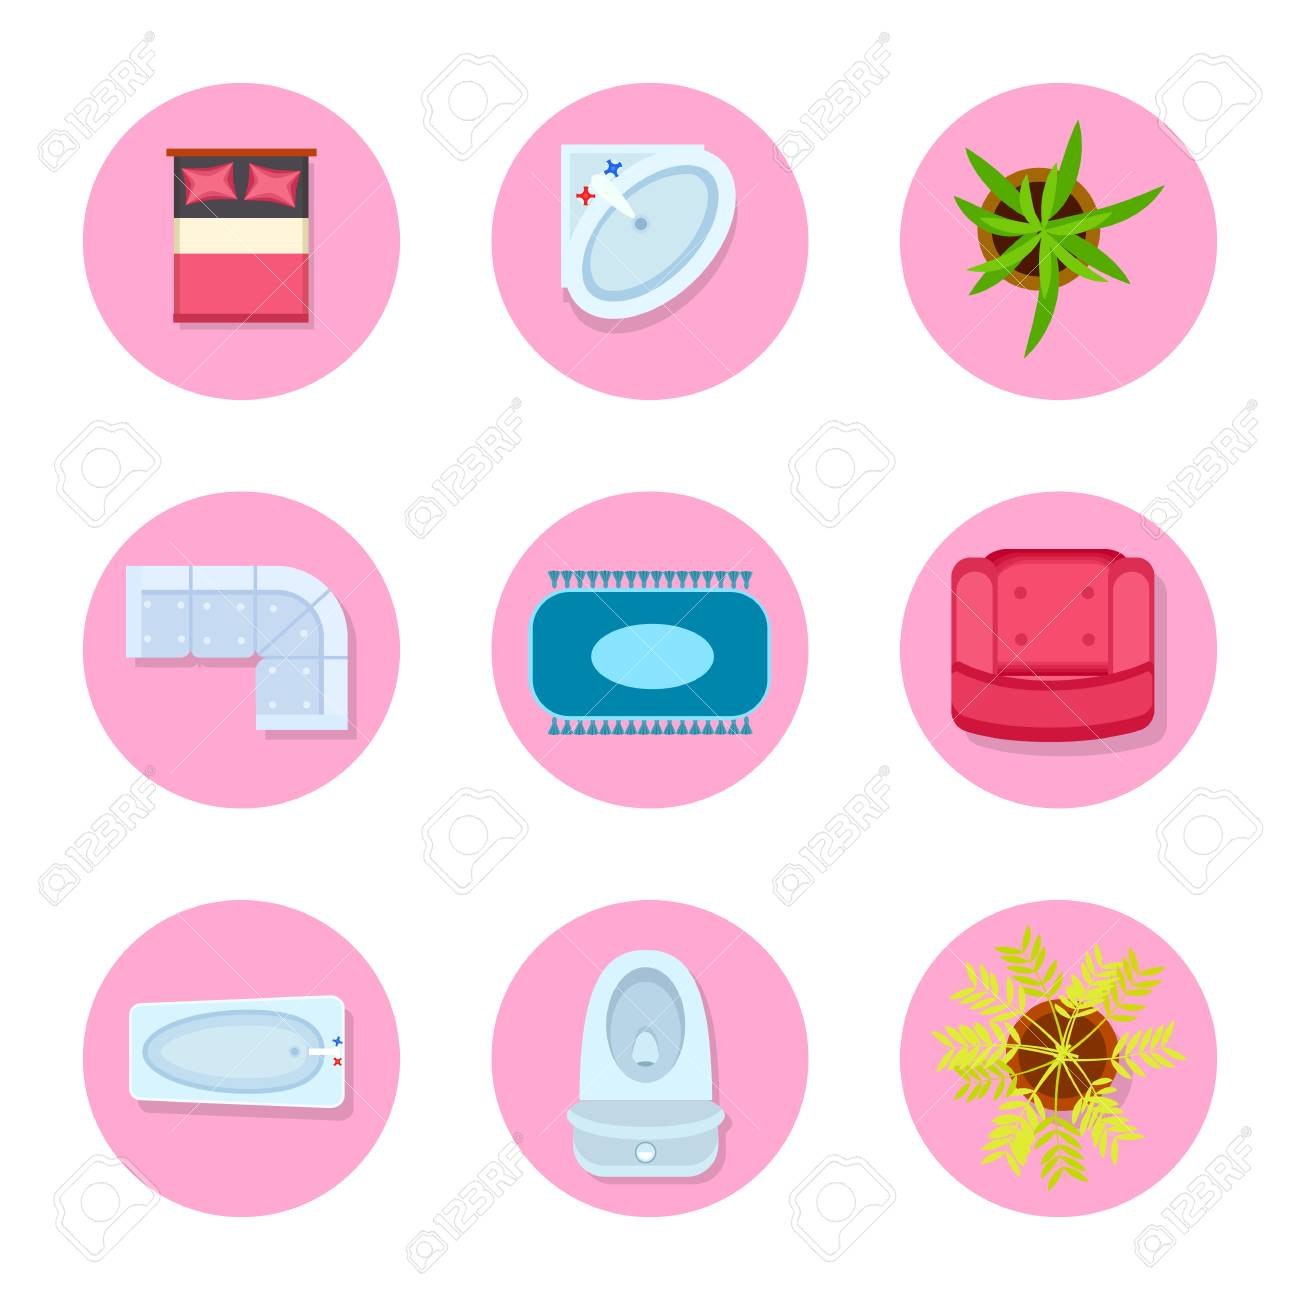 Icon Set On Flat Design Theme Representing Objects That Are Usually ...